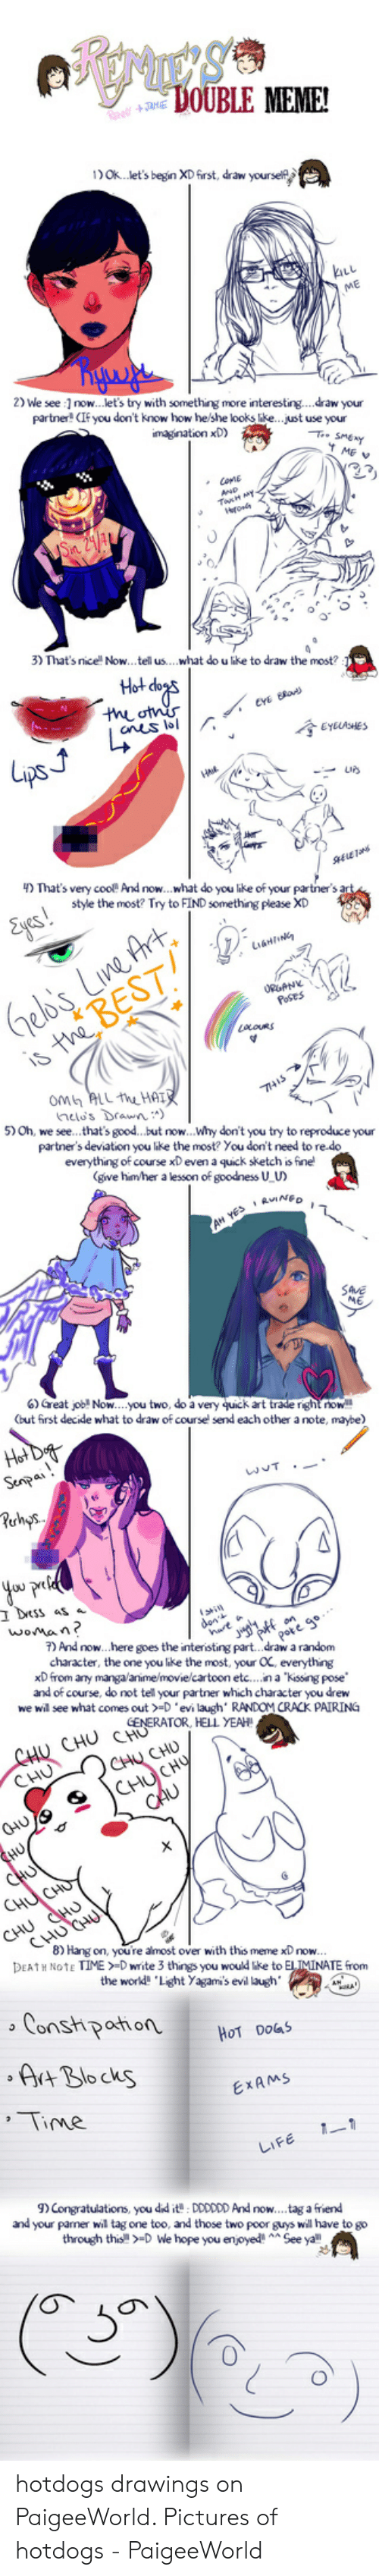 Paigeeworld: VOUBLE MEME!  1) Ok..let's begin XD first, draw yourself  2) We see 1 now...let's try with something more interesting....draw your  partner! CIF you don't kno  looks like..  imagination xD)  3) That's nice Now... tell us....what do u like to draw the most?  Hot dogs  theotnis  anes lol  EYELASHES  ps  That's  cool And now.  stve the mos? Try to FIND something clease XD  artners  Eyes!  Gelb's Live Art  is the BEST  Lu6HIN  OM ALL the HAIR  helo's Drawn)  5) Oh,  ket  Yedoo't need to re. do  everything of course xD even a quick sketch is fine  (give him/her a lesson of goodness U U  AH YESRNED  6) Great job Now... you two, do a very quick art trade right now  (but first decide what to draw of course send each other a note, mavbe)  Hot De  Senpa  wT  Puhs  you prl  I Dess as  woman?  7) And now...here goes the interisting part.. .draw a random  character, the one you like the most, your OC, everything  xD from any manga/anime/movie/cartoon etc....na Kissng pose  dent  e wil see what comes out-D 'evi laugh' RANDOM CRACK PAIRING  CHU CHO CHURATOR, HELL YEAH  CHU  CHU CHU  9CHUCHU  CAU  HUO  CHU  CHU CHUT  CHU CHU  HUCHU  8) Hang on, you're almost over with this meme  DEATH NOTE TIME-D write 3 things you would like to ELIMINATE from  now.  the world Light Yagami's evil laugh'  Constpahion  HOT DOGS  Art Blo cks  EXAMS  Time  1-1  LIFE  ) Congratulations, you did it DDDDDD And now....tag a friend  and your parner wil tag one too, and those two poor guys will have to go  through th  > -D We hope you enjoyed  See ya hotdogs drawings on PaigeeWorld. Pictures of hotdogs - PaigeeWorld